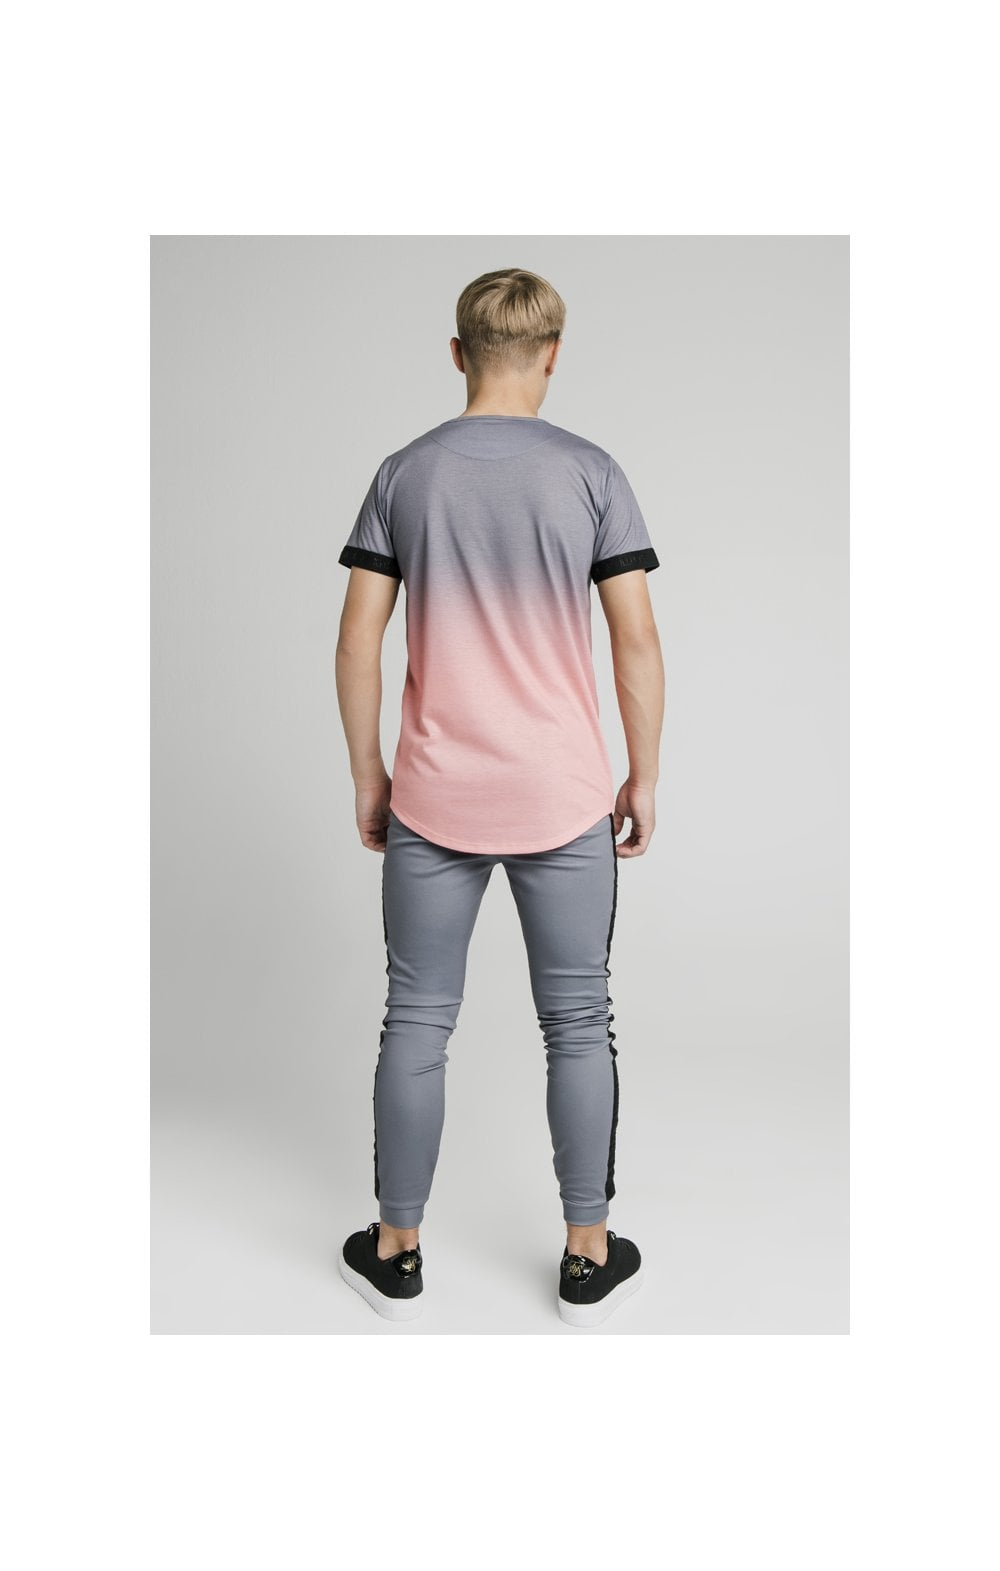 Load image into Gallery viewer, Illusive London Fade Tech Tee - Grey & Peach (5)